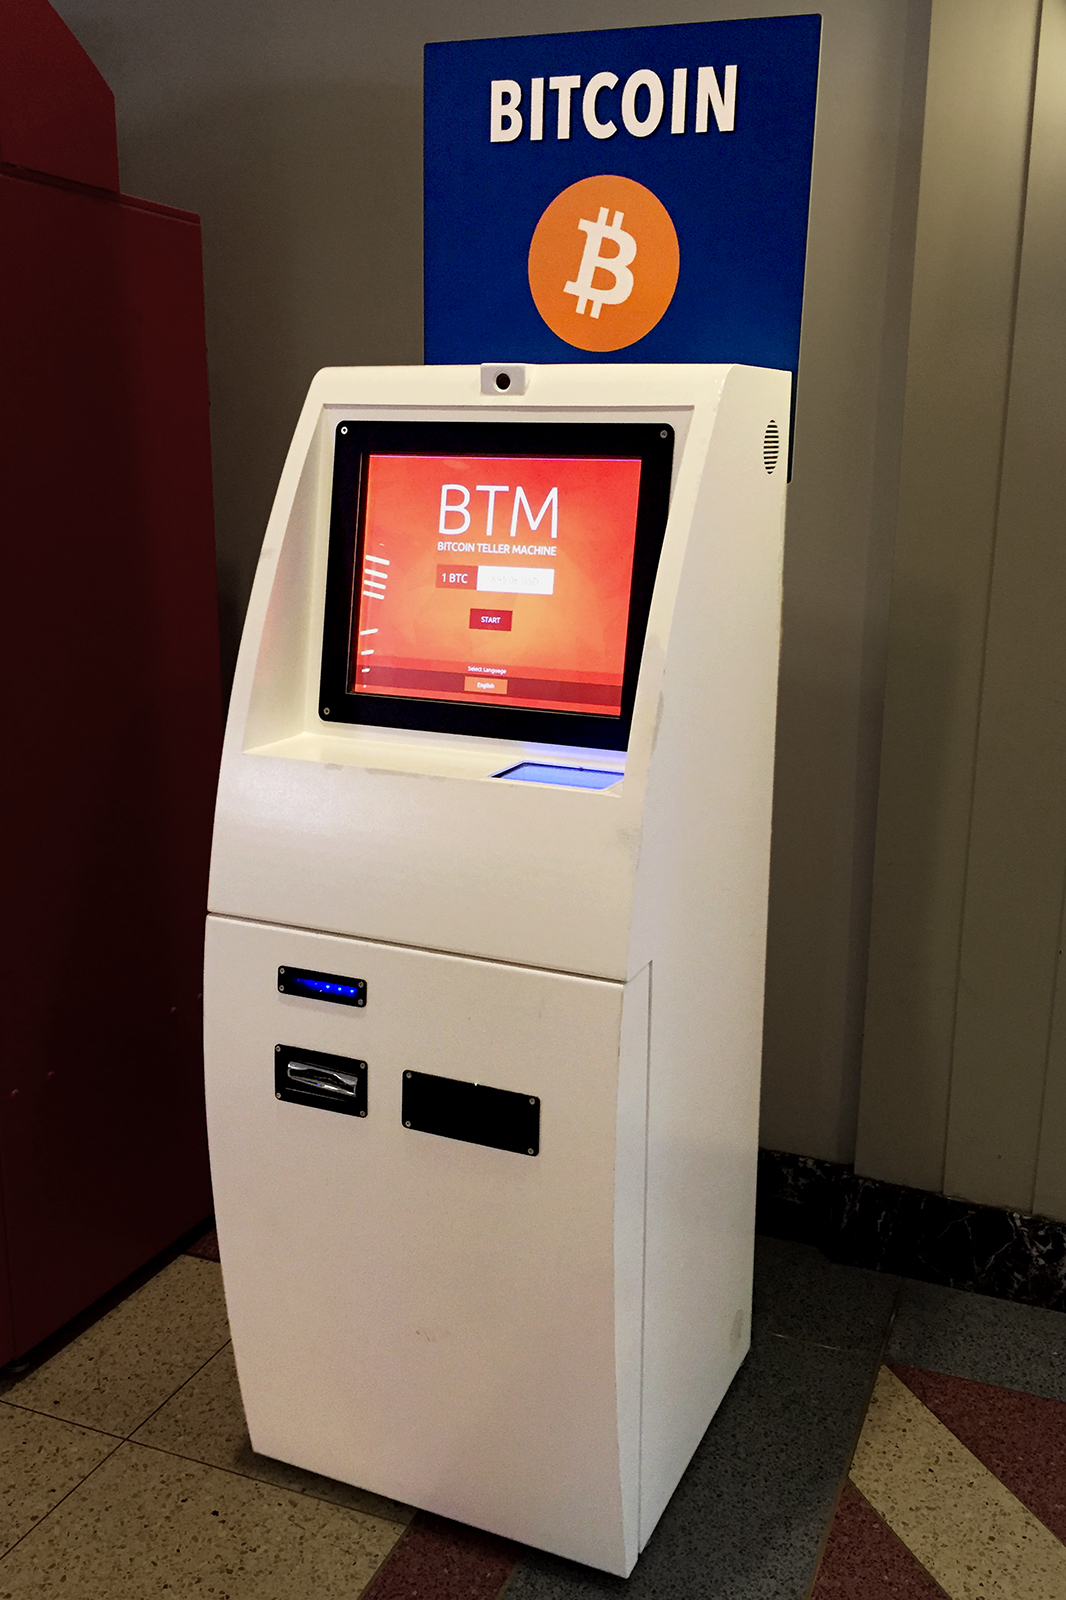 Know if   you can only buy Bitcoin near me or the ATM allows you to make other transactions.